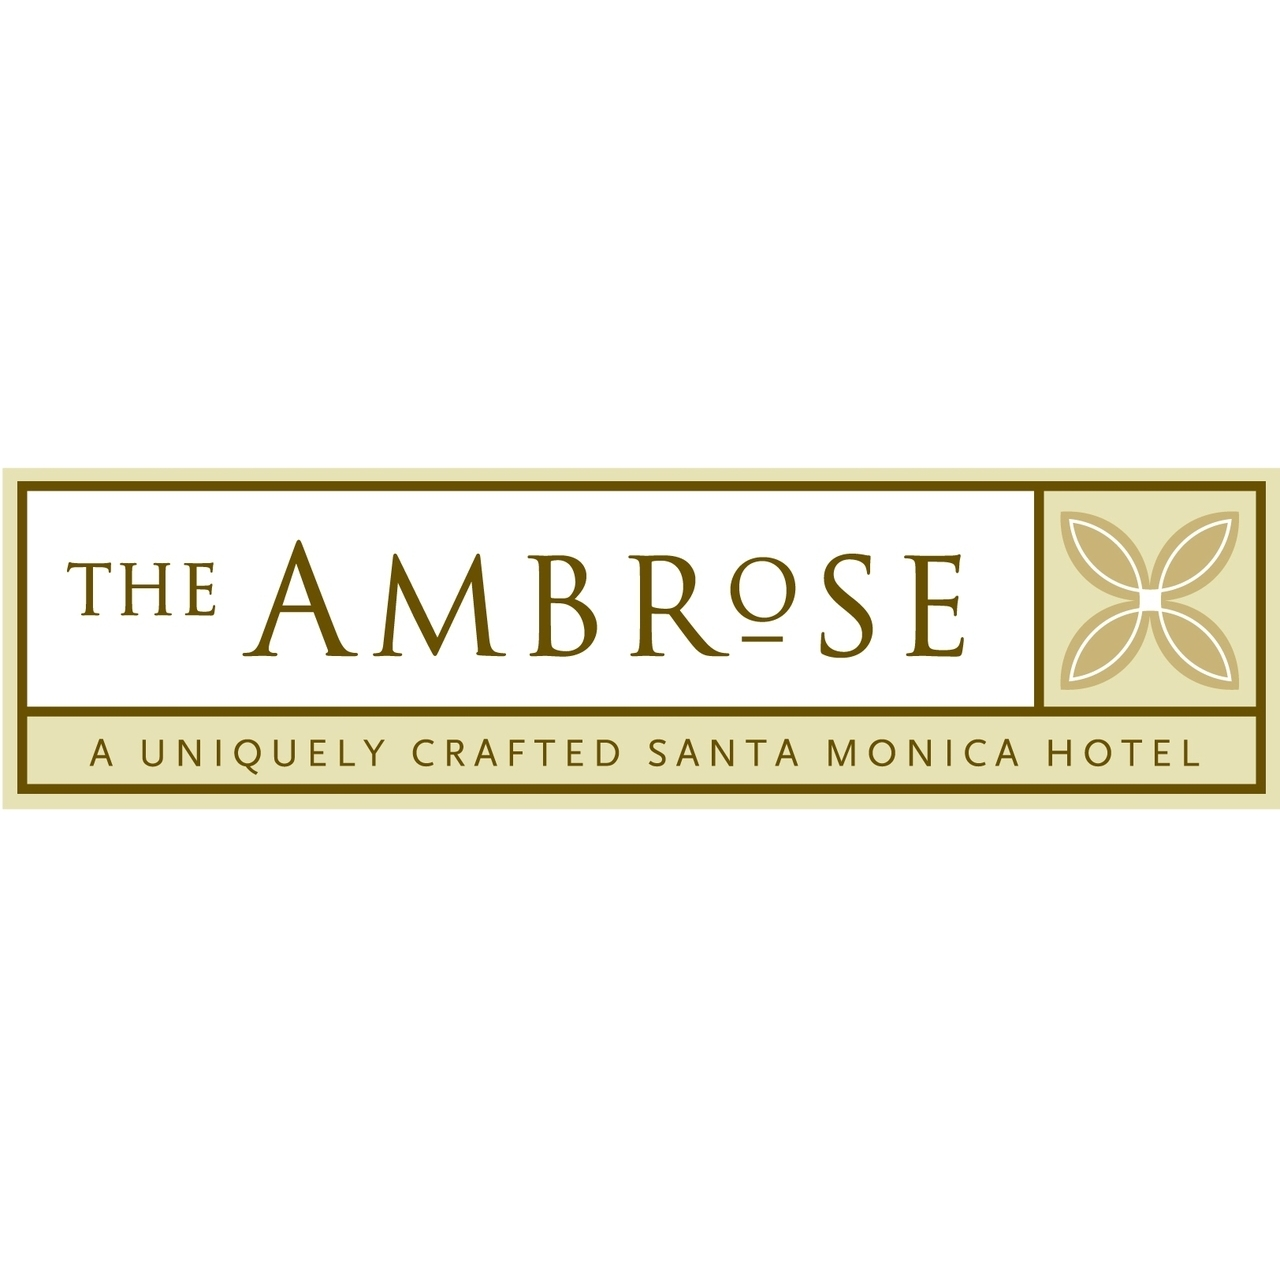 The Ambrose Hotel - Santa Monica, CA 90404 - (310) 315-1555 | ShowMeLocal.com